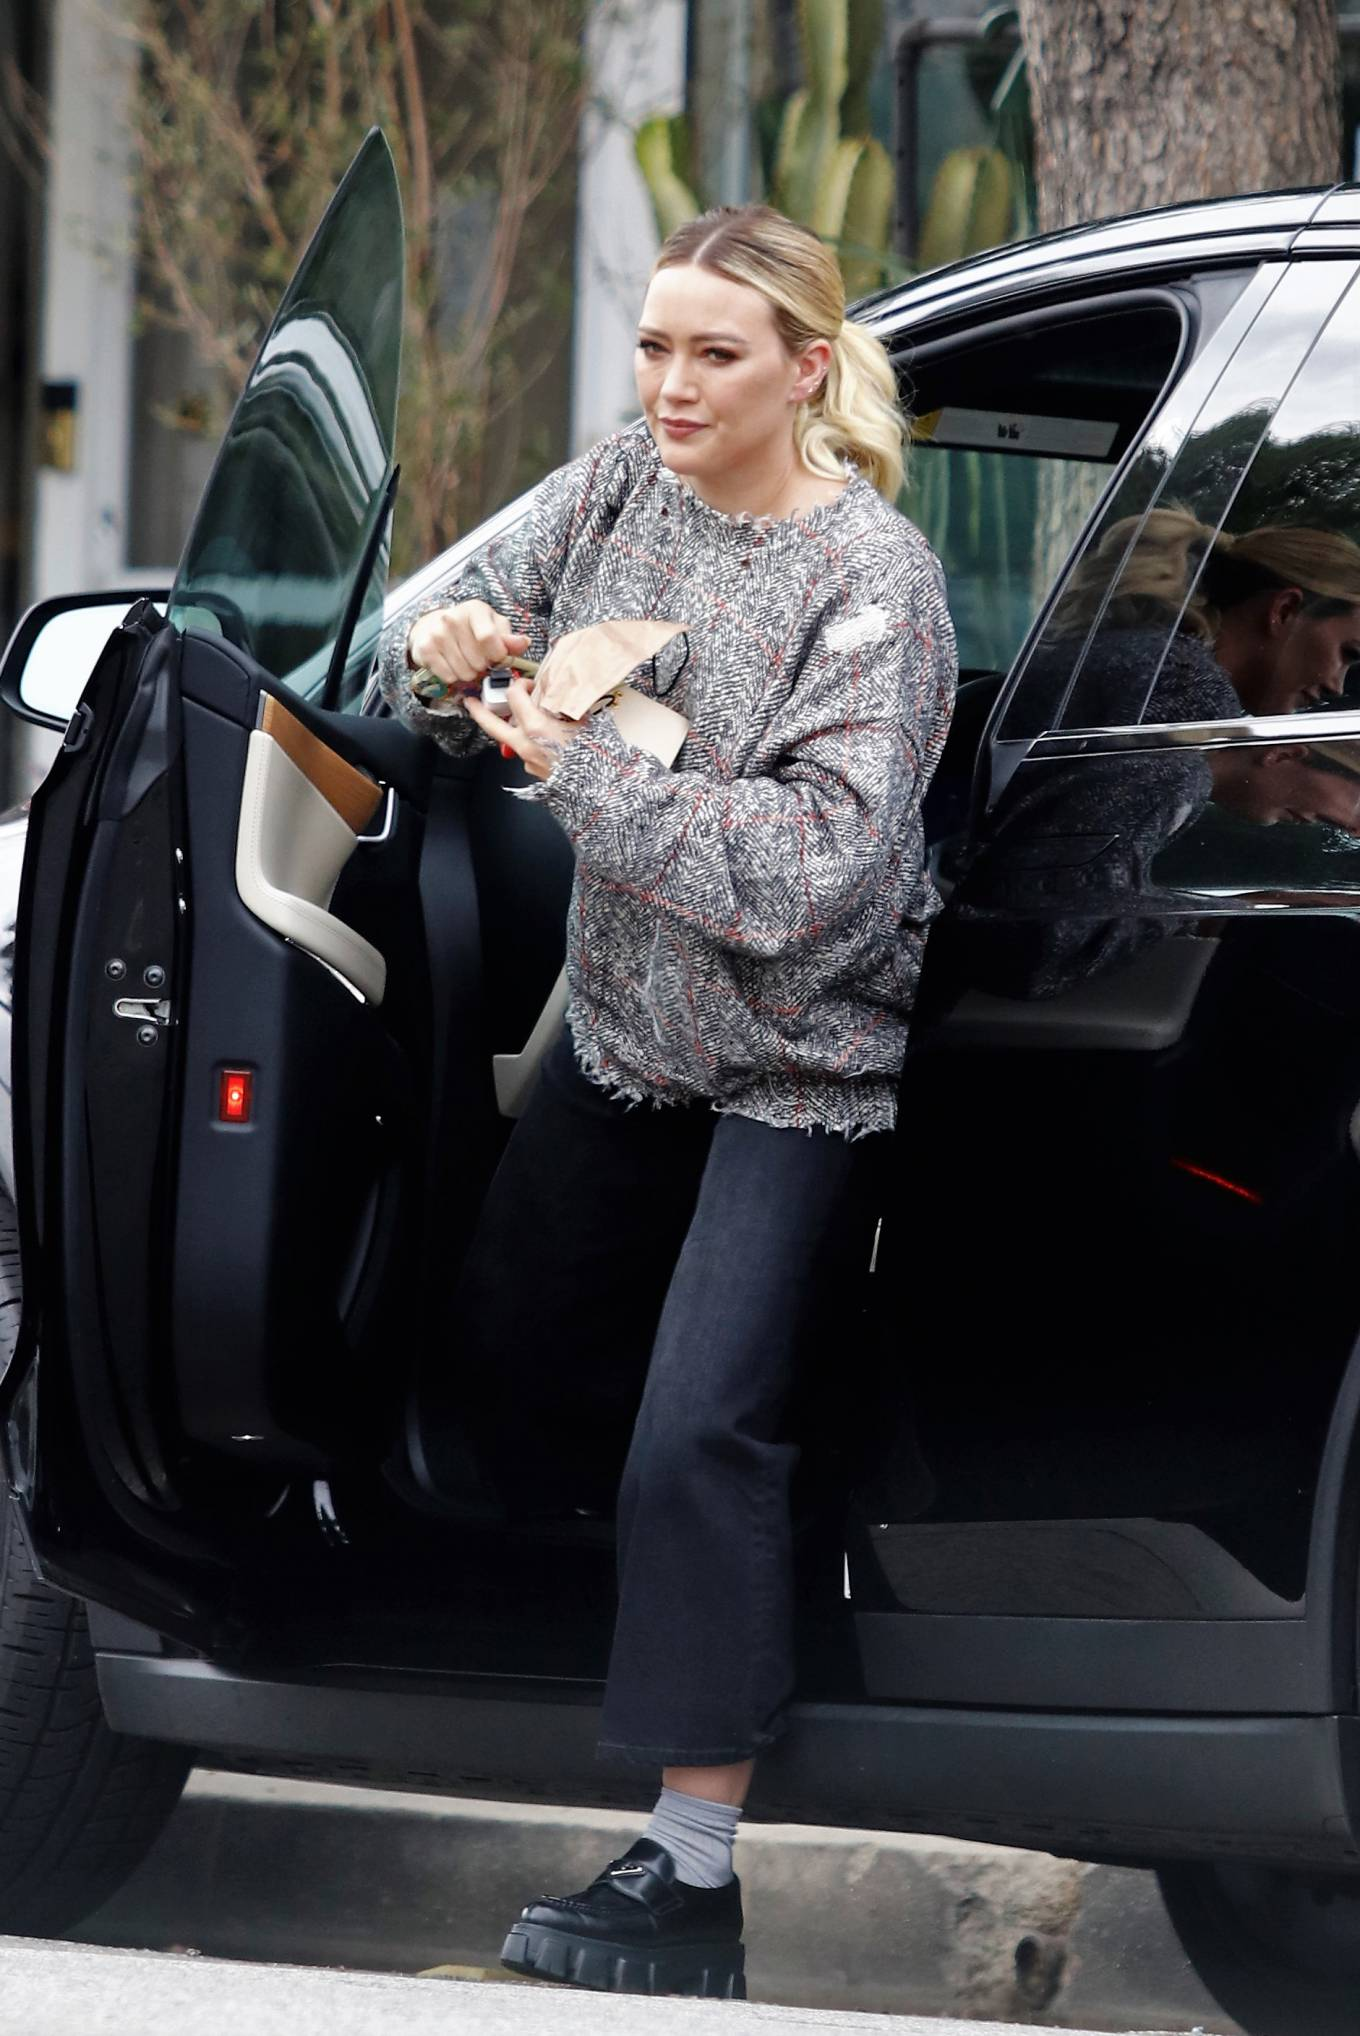 Hilary Duff - Seen with a large bouquet of flowers in Los Angeles